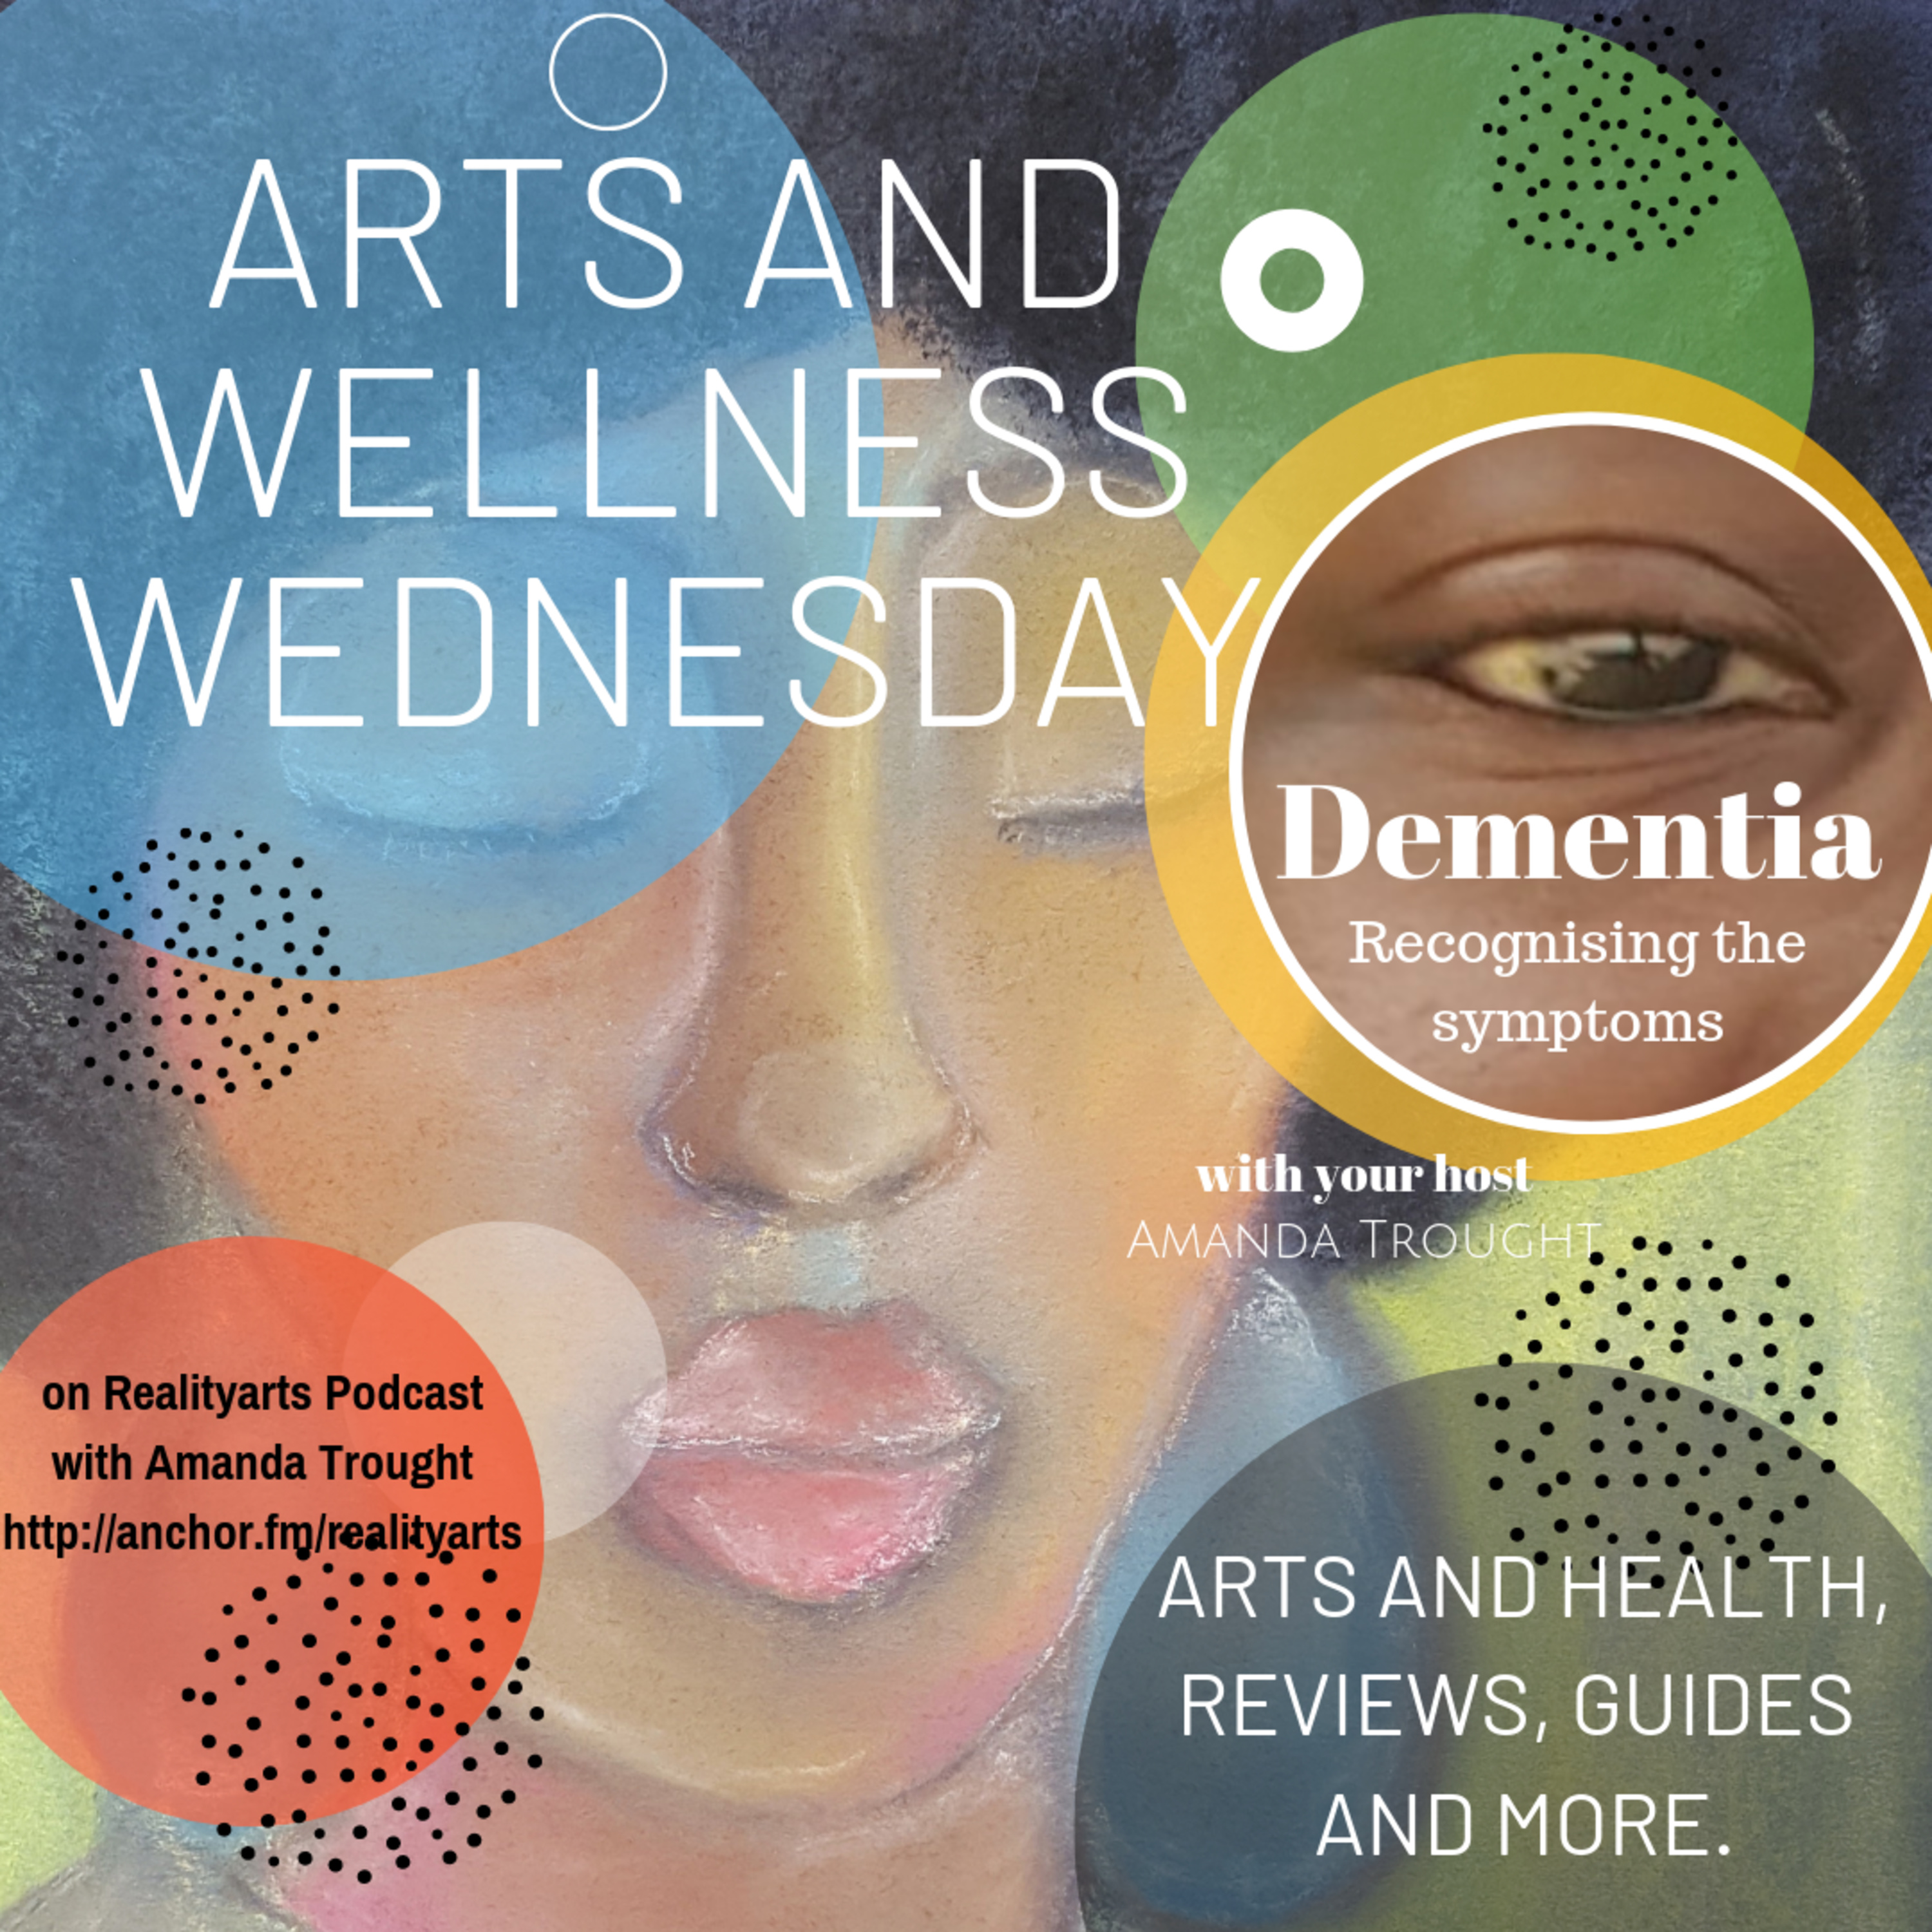 Art and Wellness Wednesday - Dementia Recognizing the Symptoms